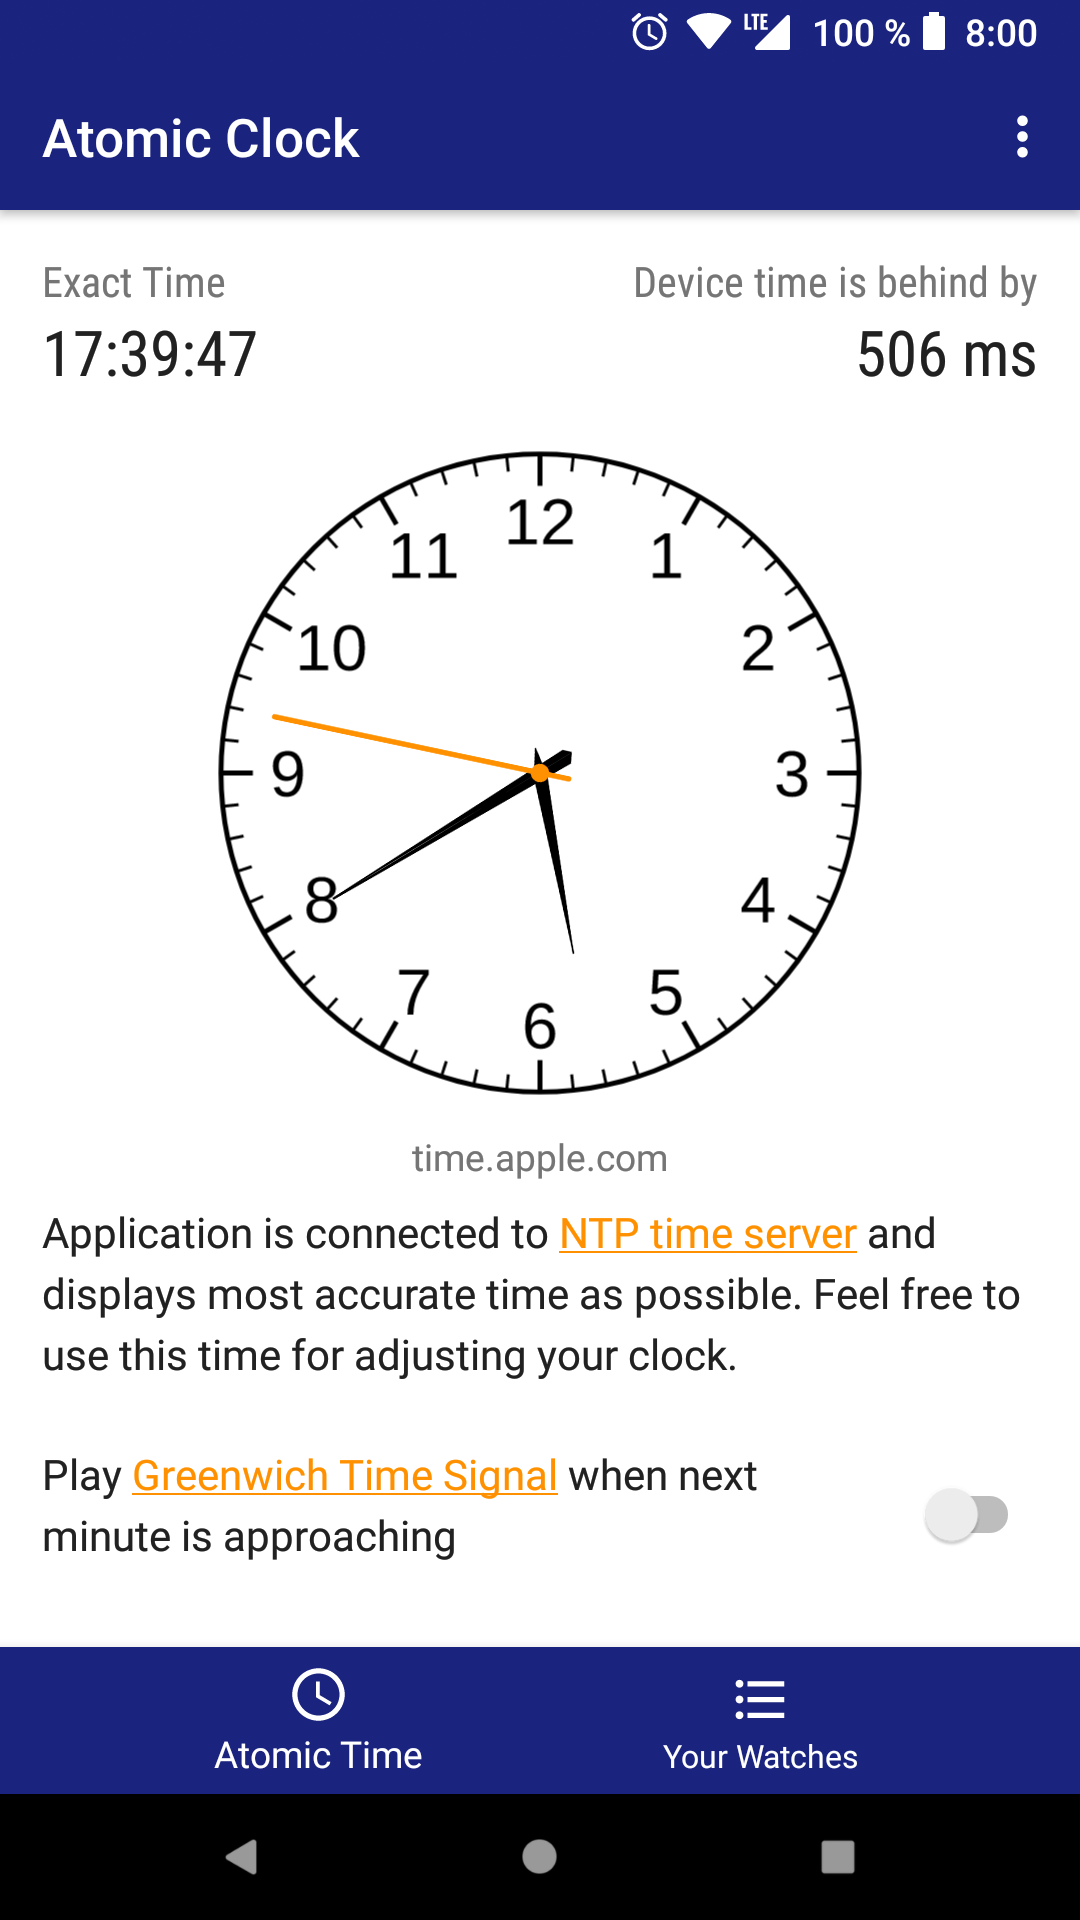 Atomic Clock & Watch Accuracy Tool (with NTP Time